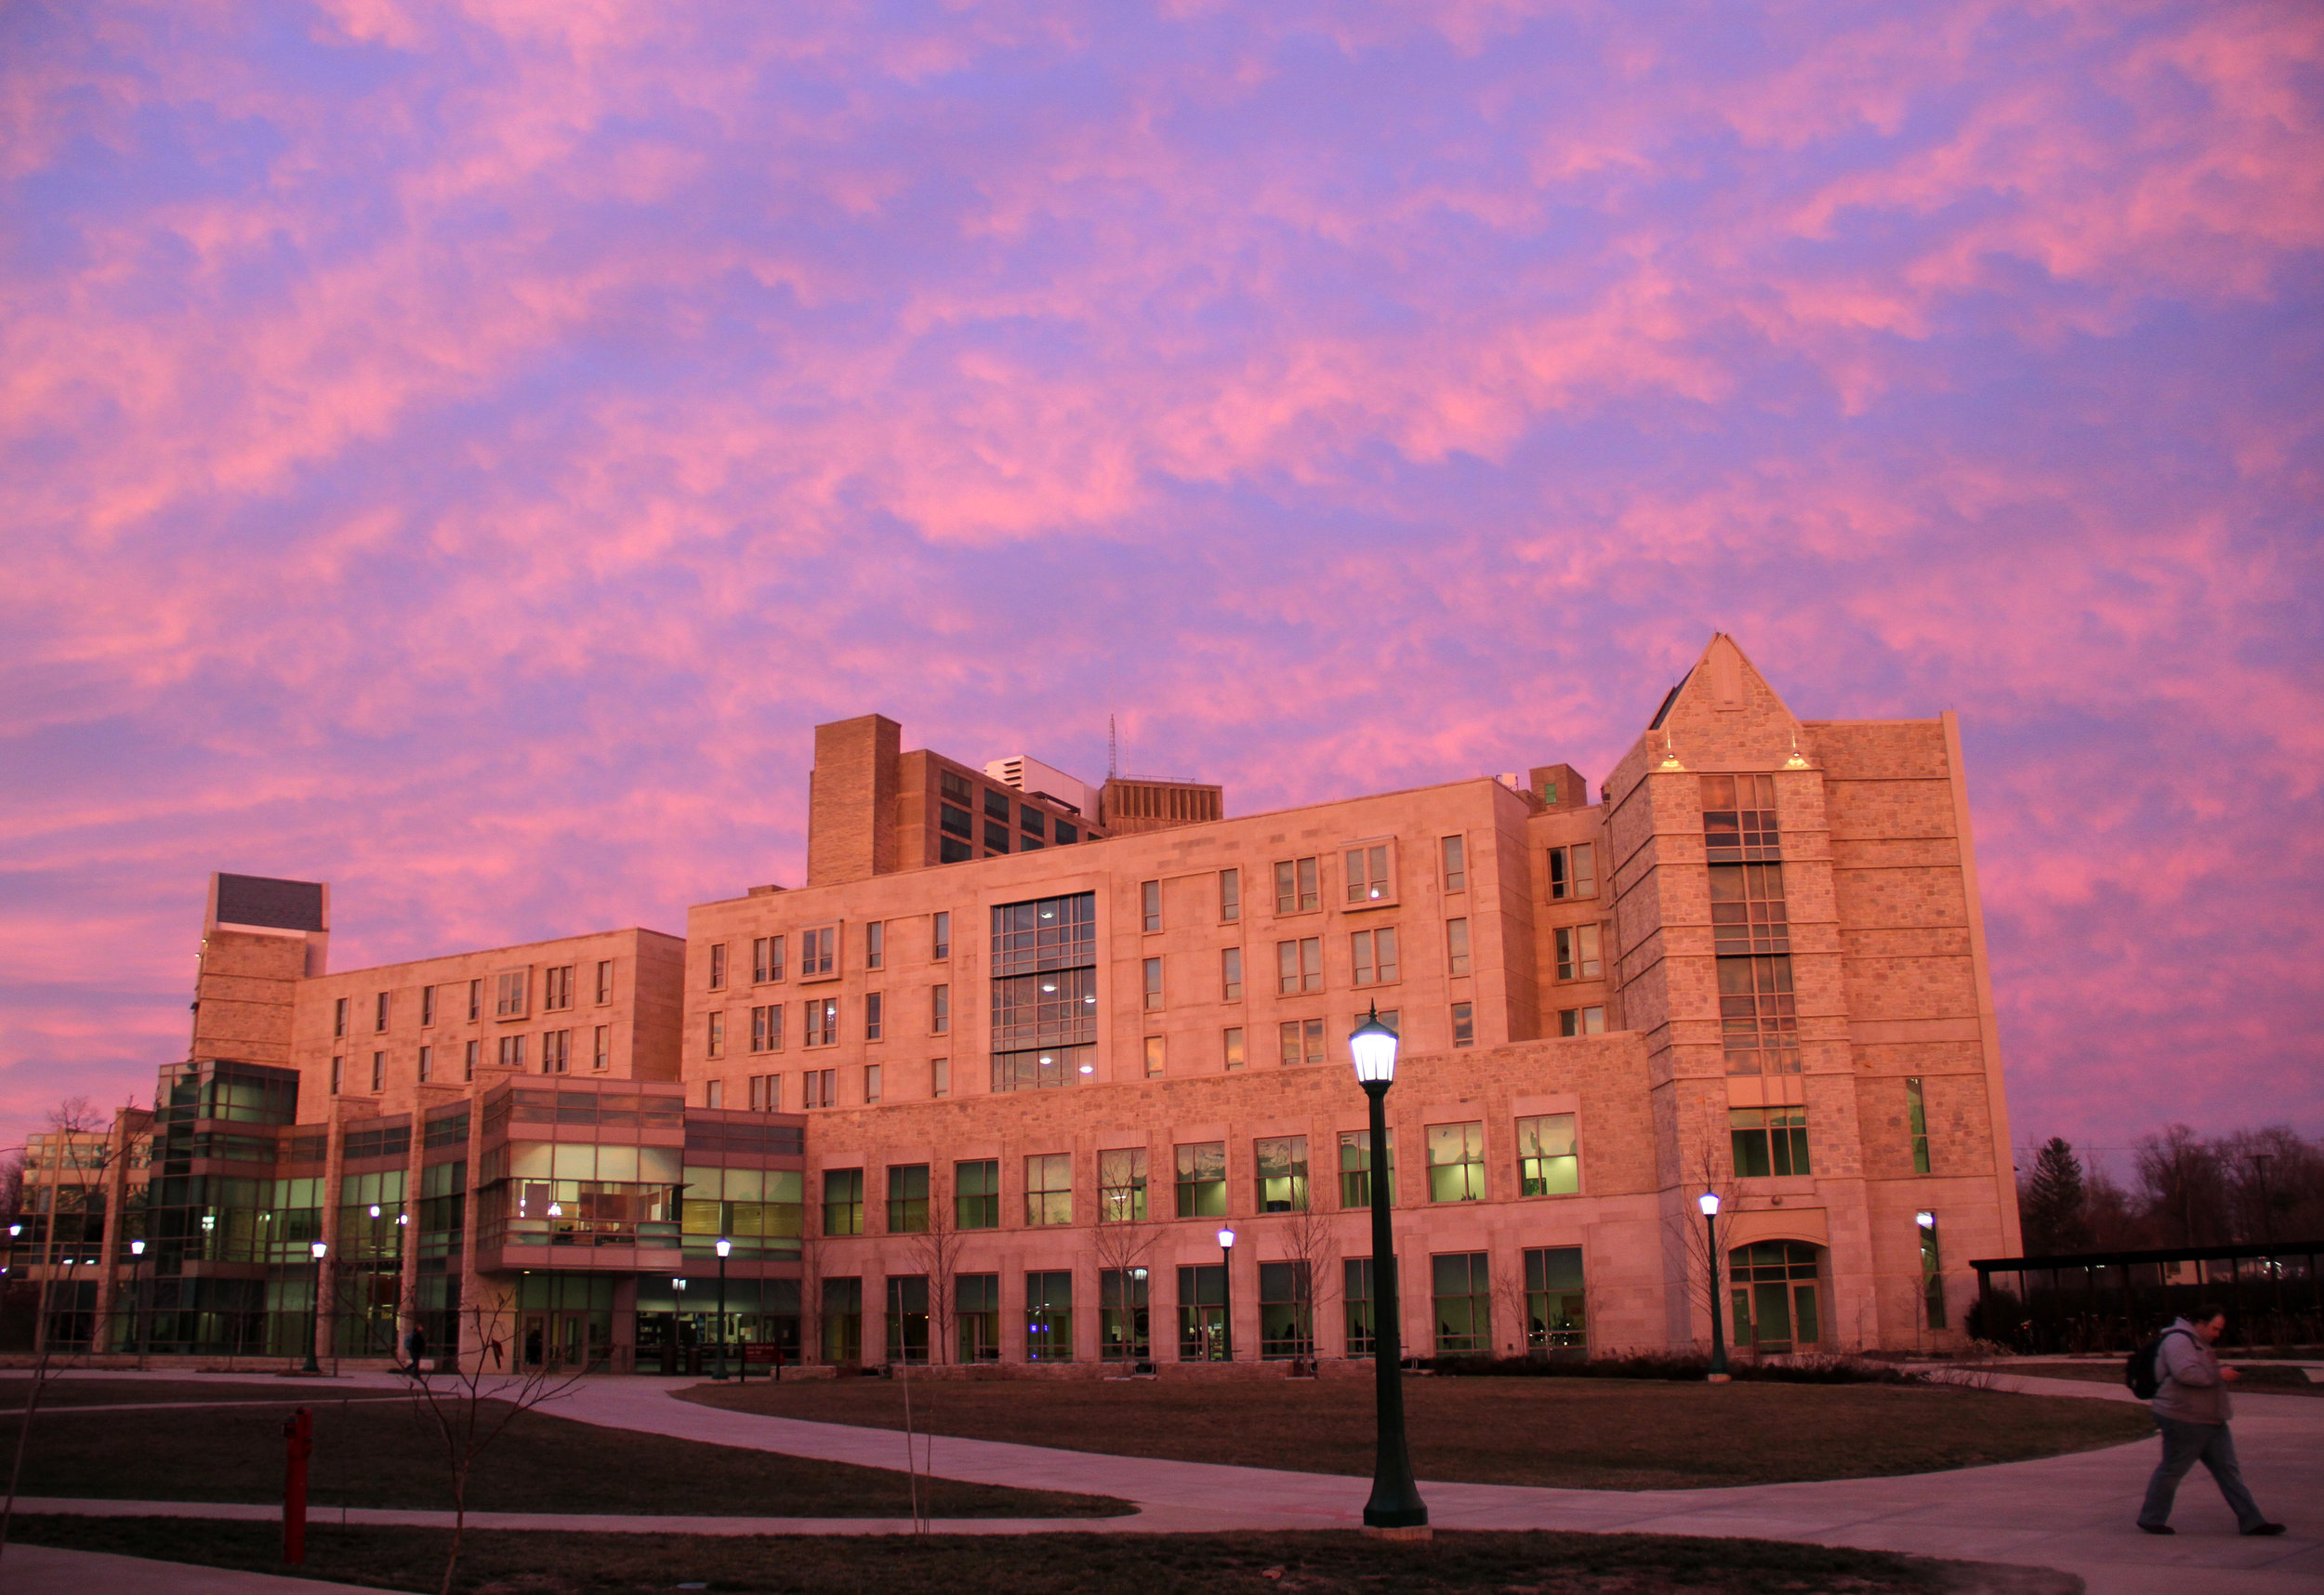 Cedar Hall at Union Street Center is seen at dusk on the Indiana University campus in Bloomington, Indiana.